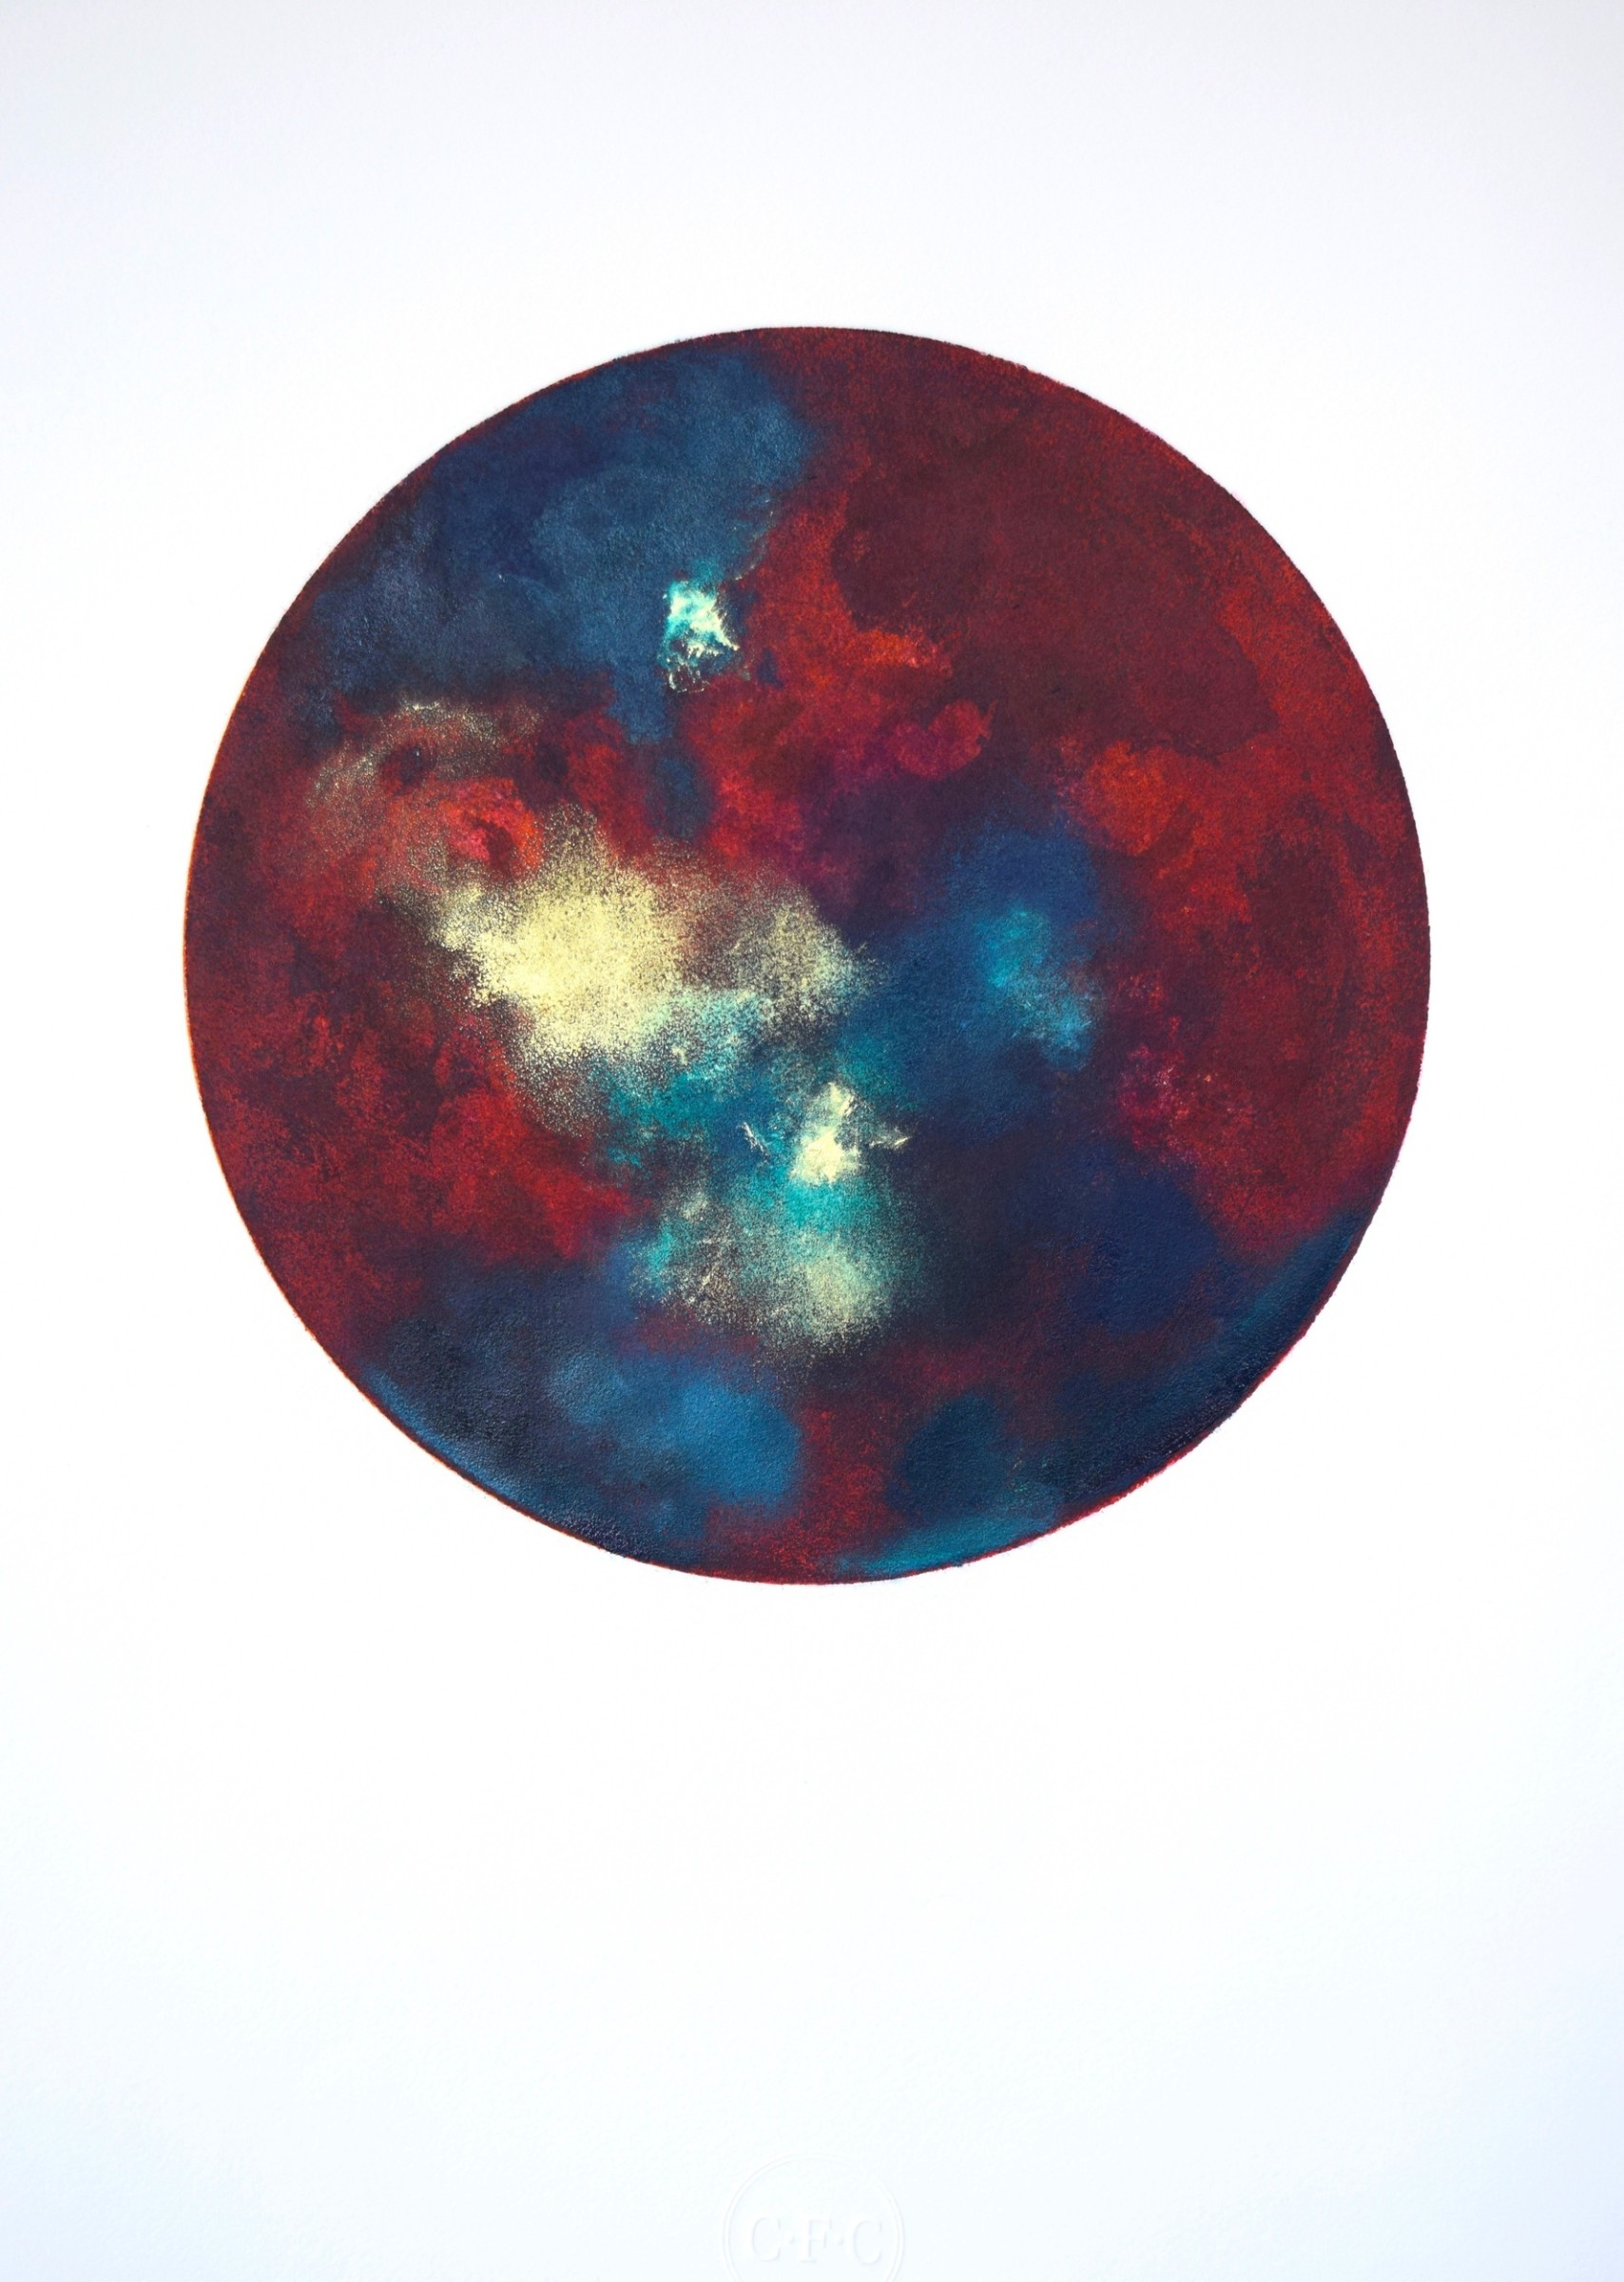 """<span class=""""link fancybox-details-link""""><a href=""""/exhibitions/17/works/image_standalone676/"""">View Detail Page</a></span><p><strong>Christina France</strong></p><p>Terra Lunar</p><p>etching with 23 carat gold dust, ed of 15</p><p>80 x 60cm</p><p>£575 framed</p><p>£420 unframed</p>"""